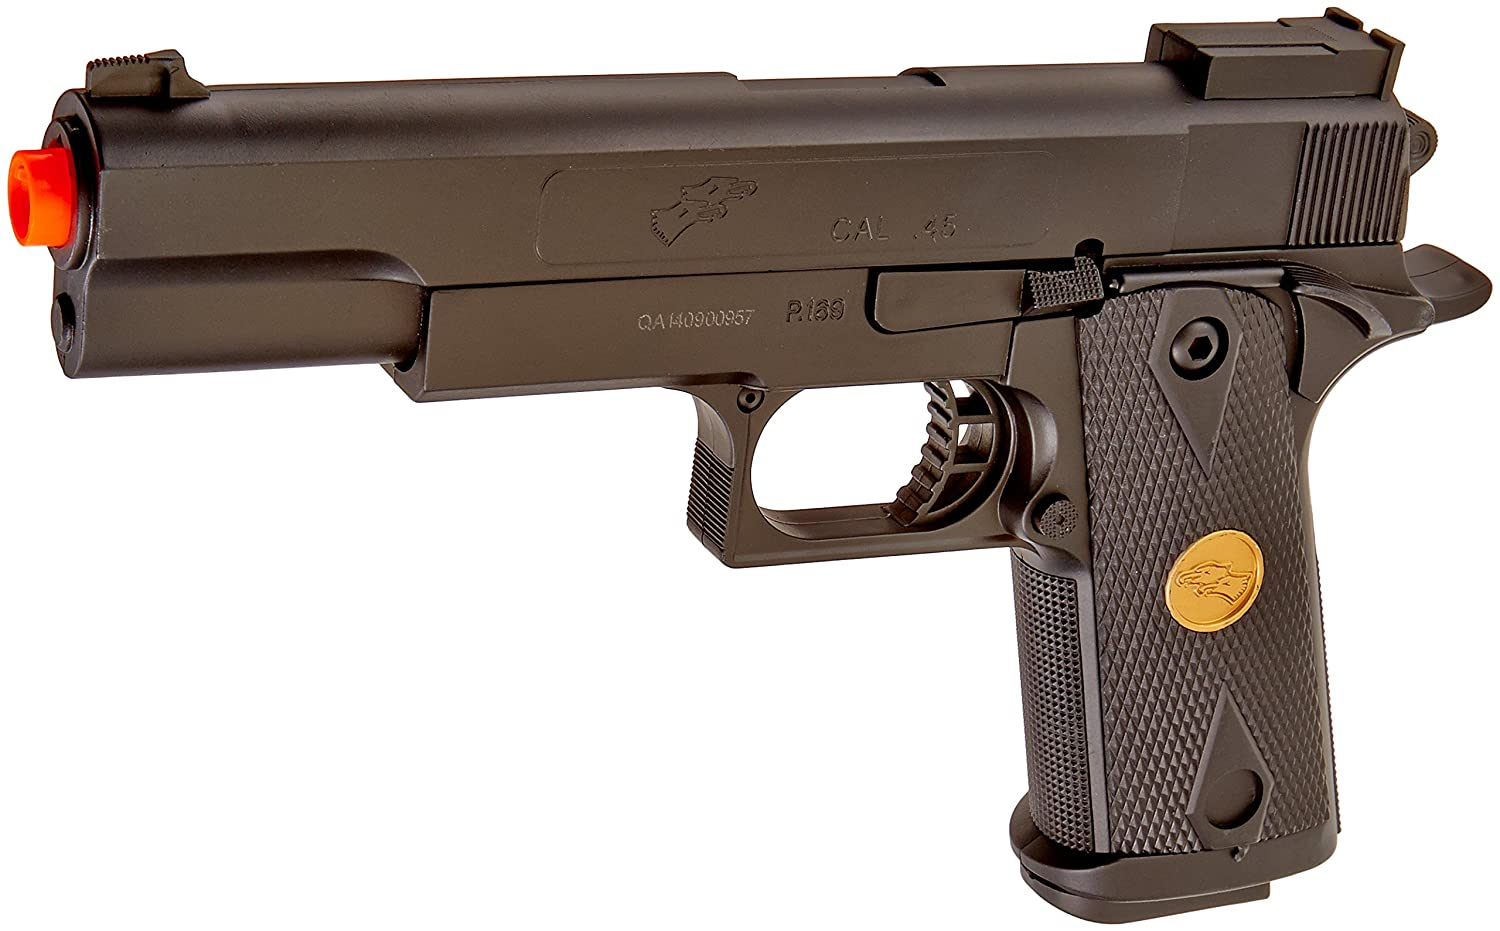 amazon com bbtac p169 airsoft gun 260 fps spring pistol handgun